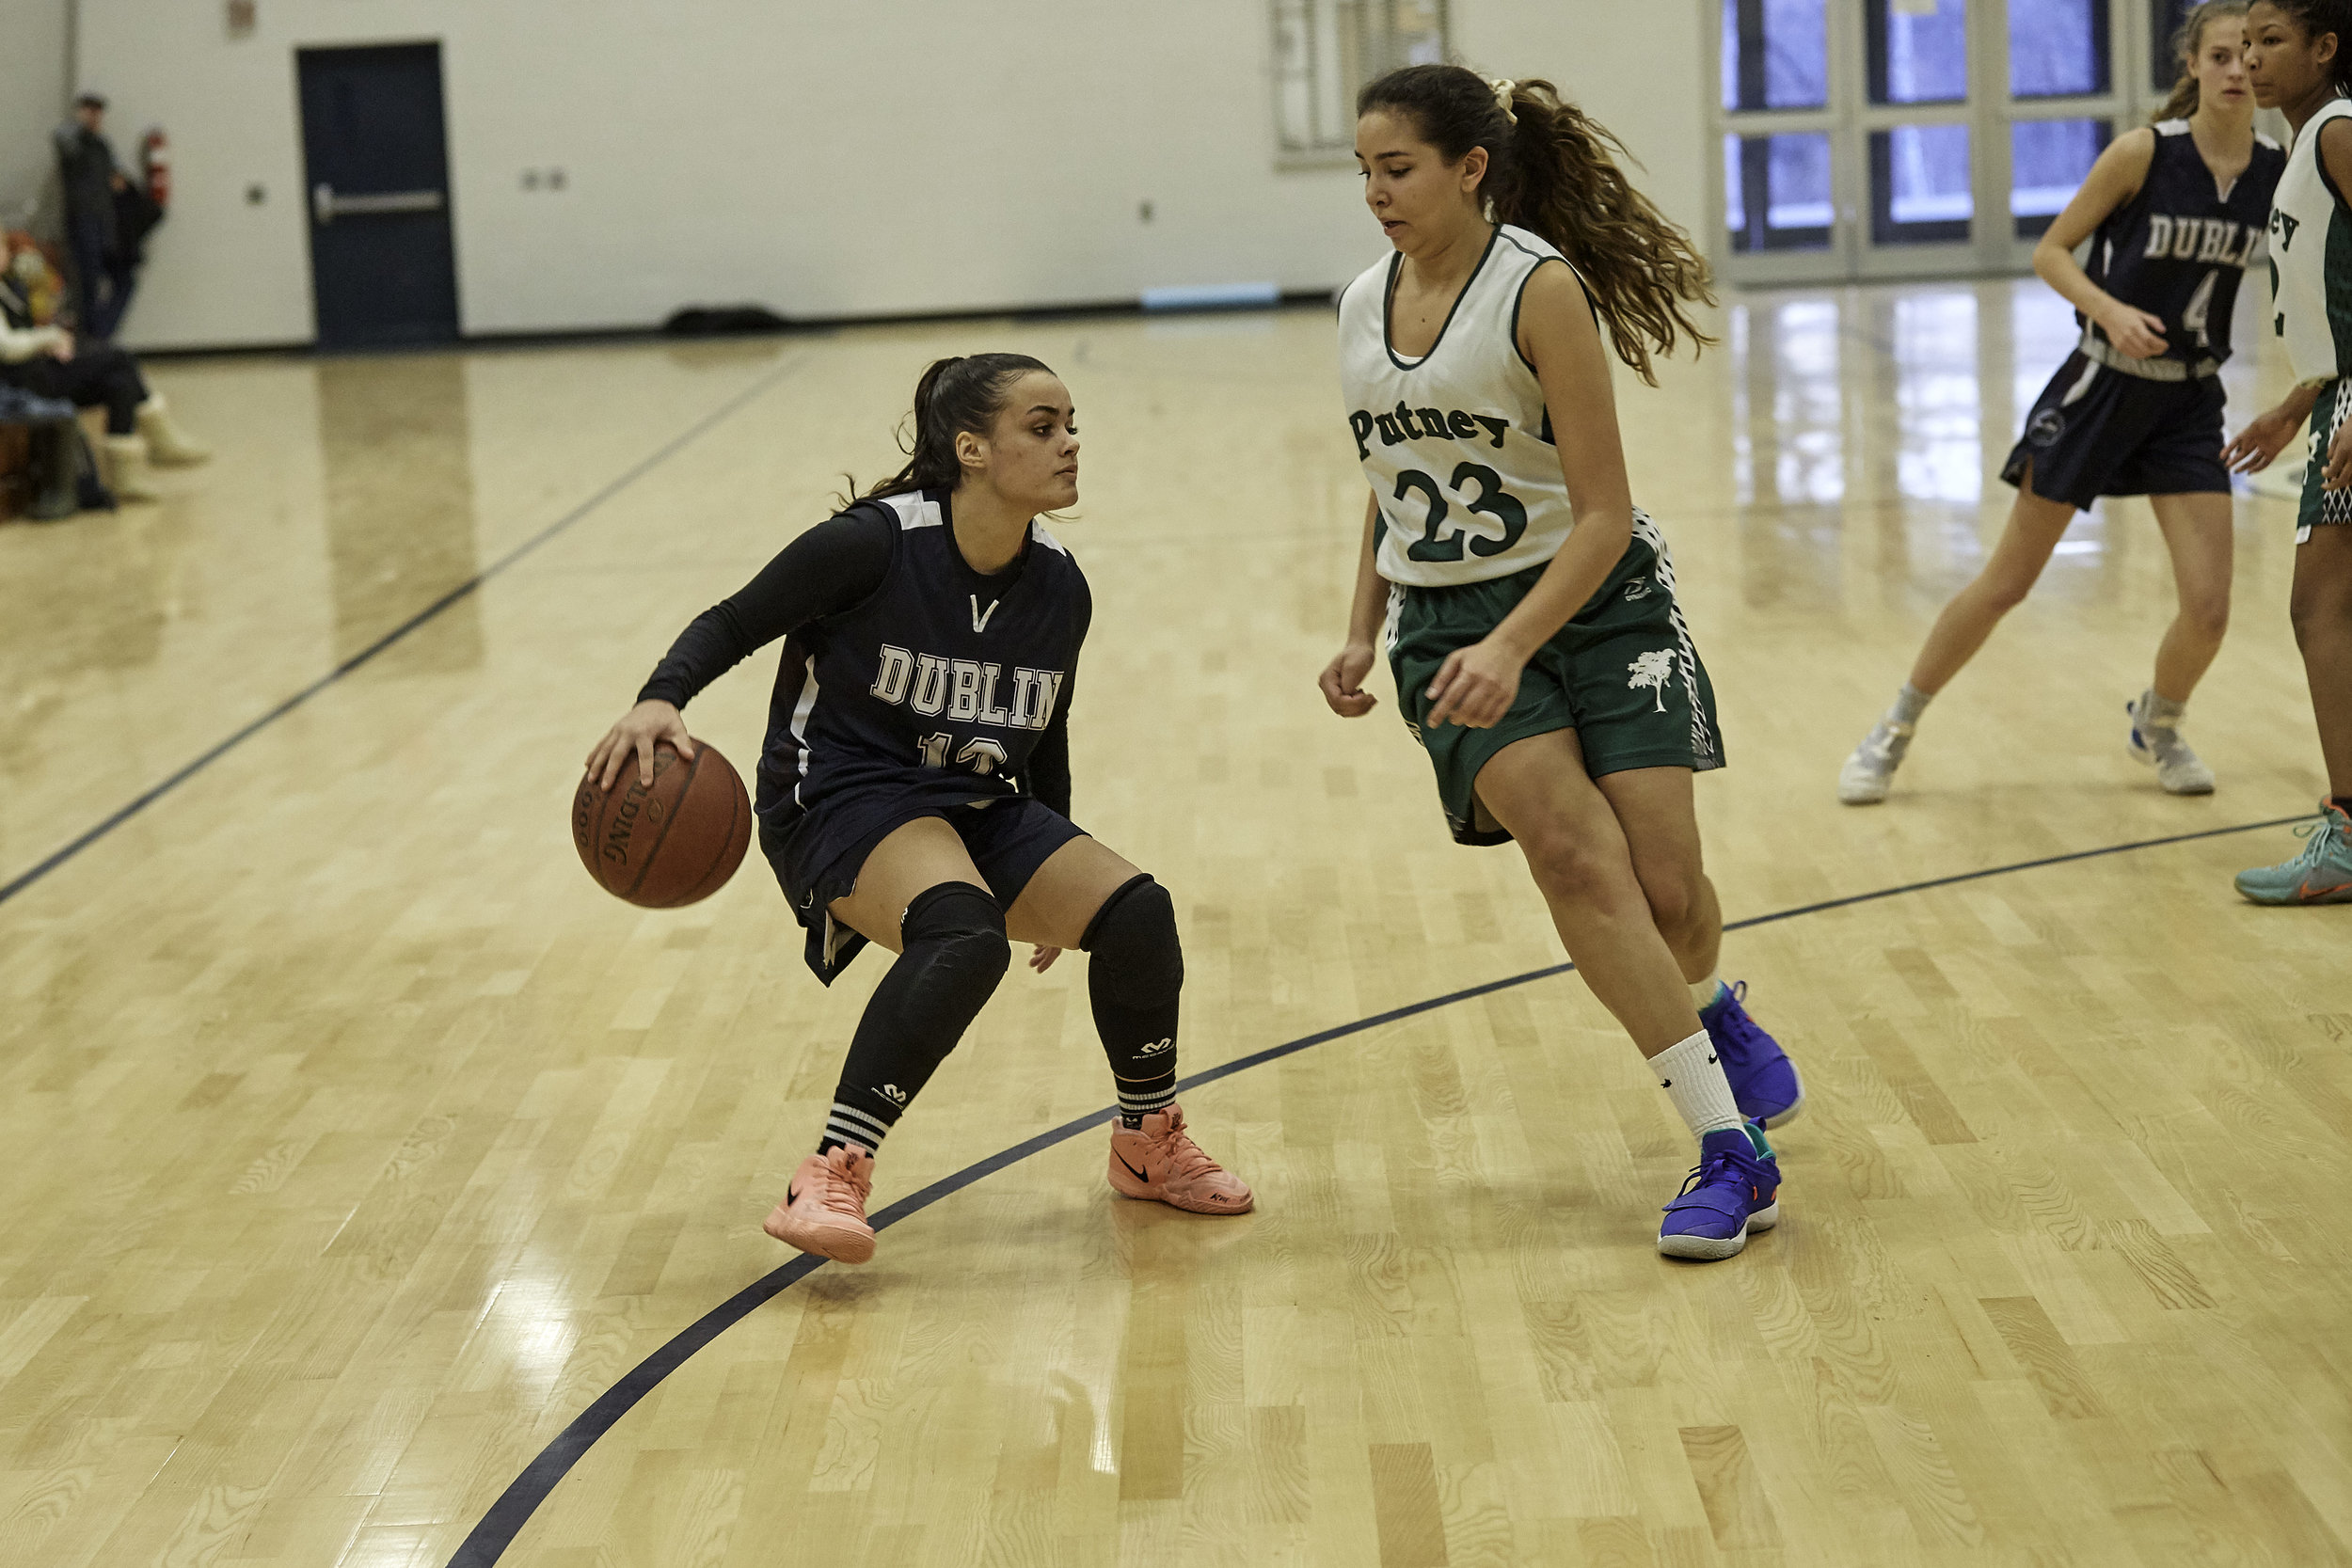 Basketball vs Putney School, February 9, 2019 - 167507.jpg